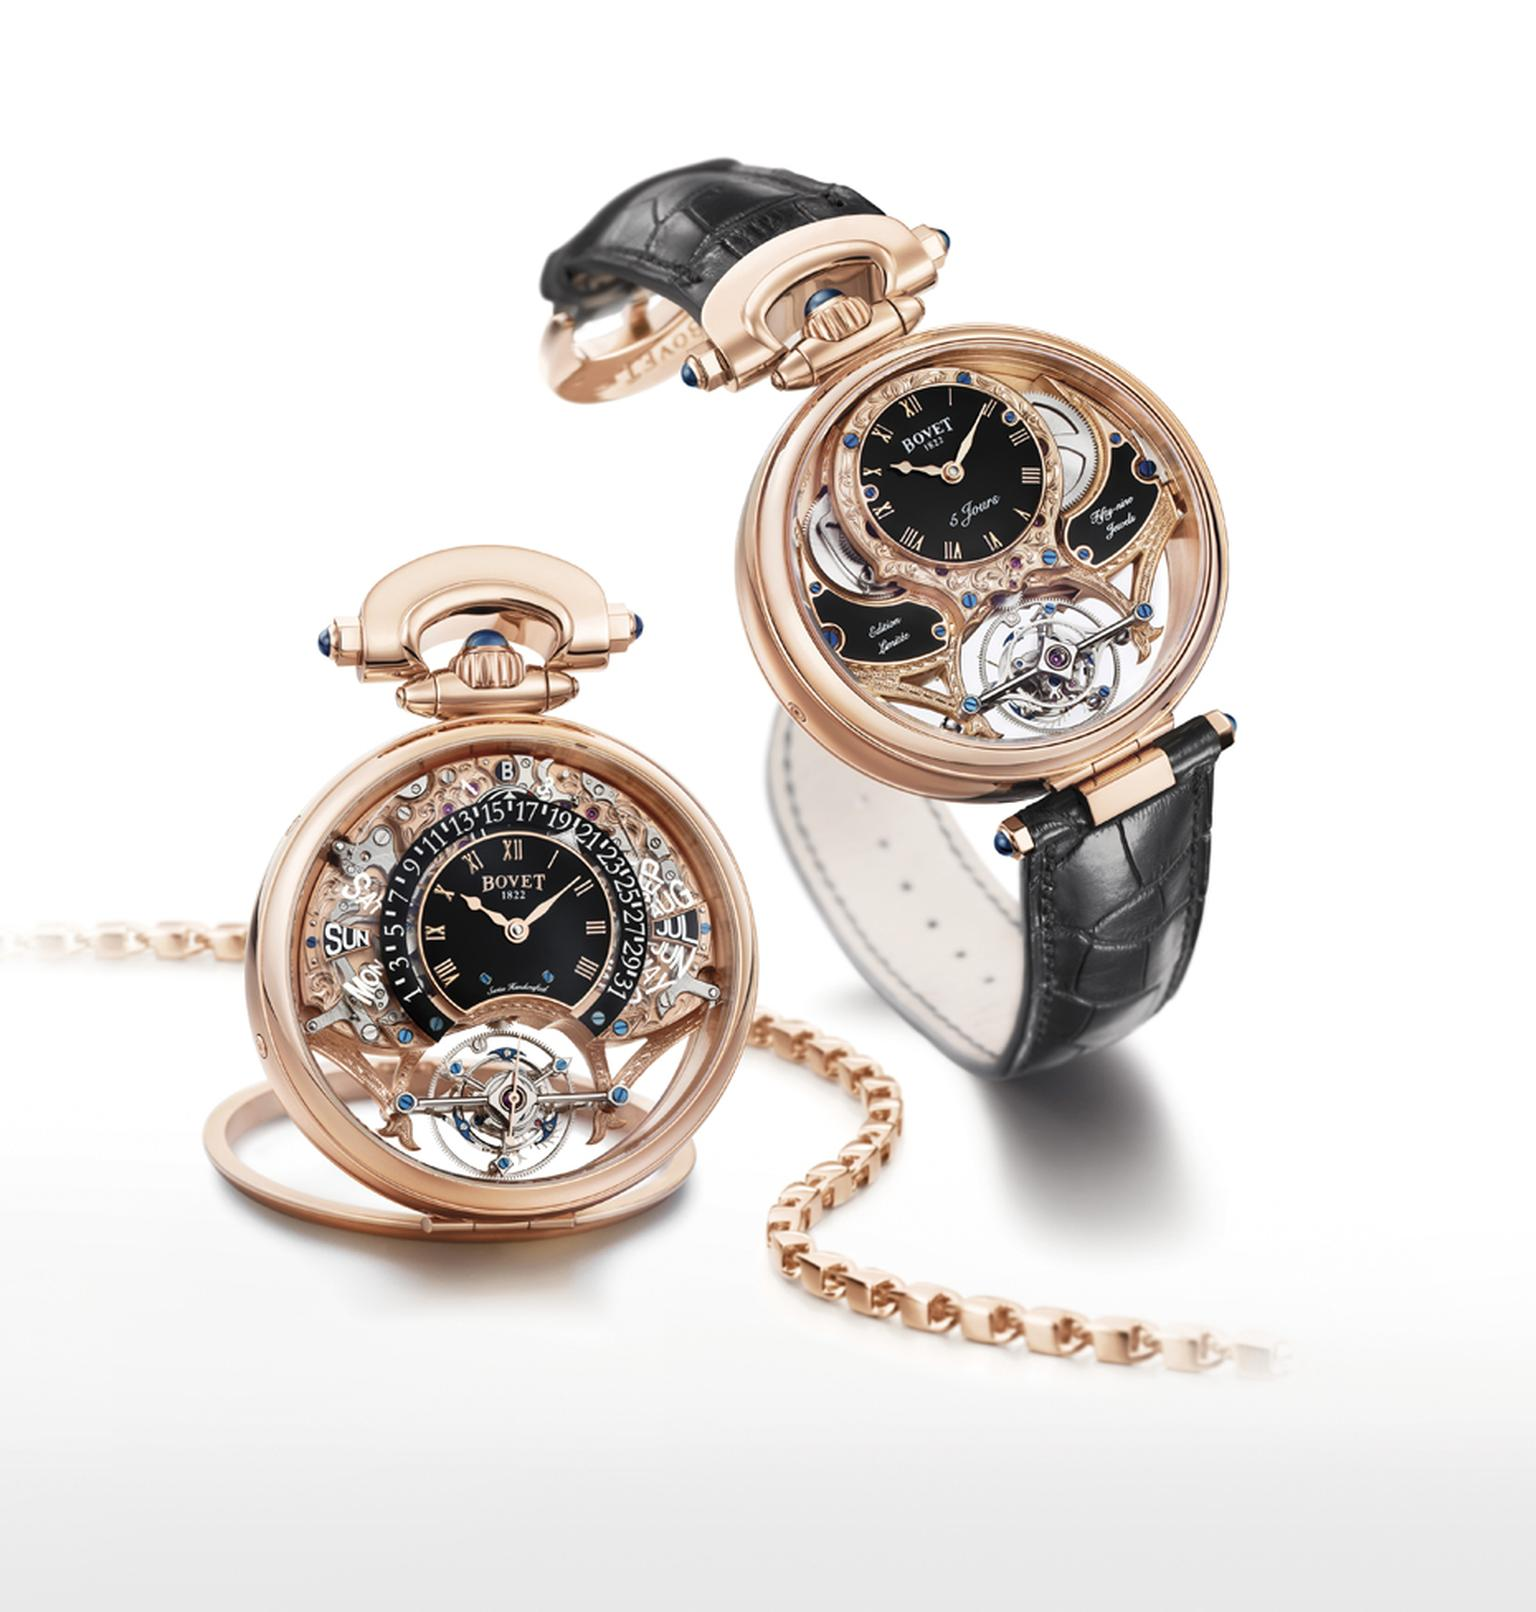 Bovet's new Amadeo® Fleurier Tourbillon Virtuoso III features a Grande Complication tourbillon movement with a five-day power reserve and retrograde perpetual calendar.